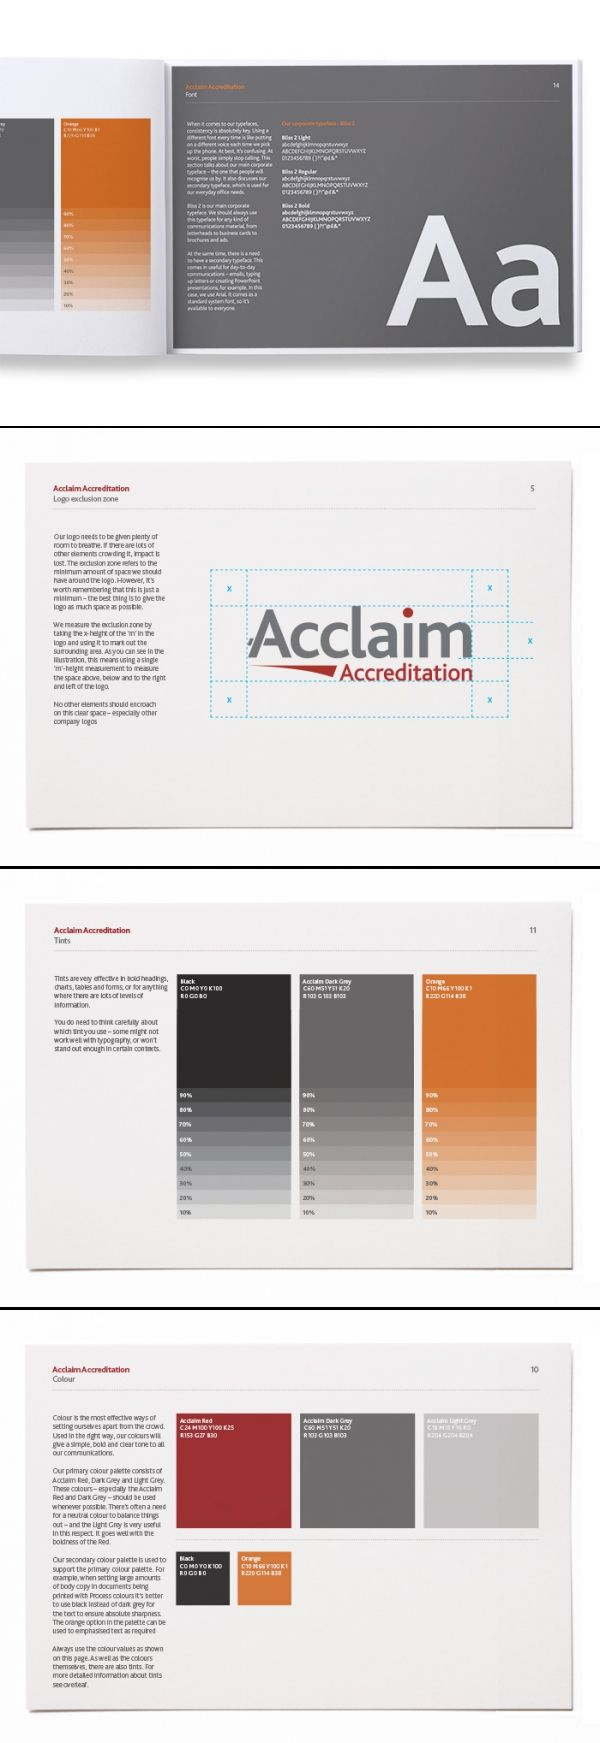 Acclaim Brand Guidelines by Adam Healy